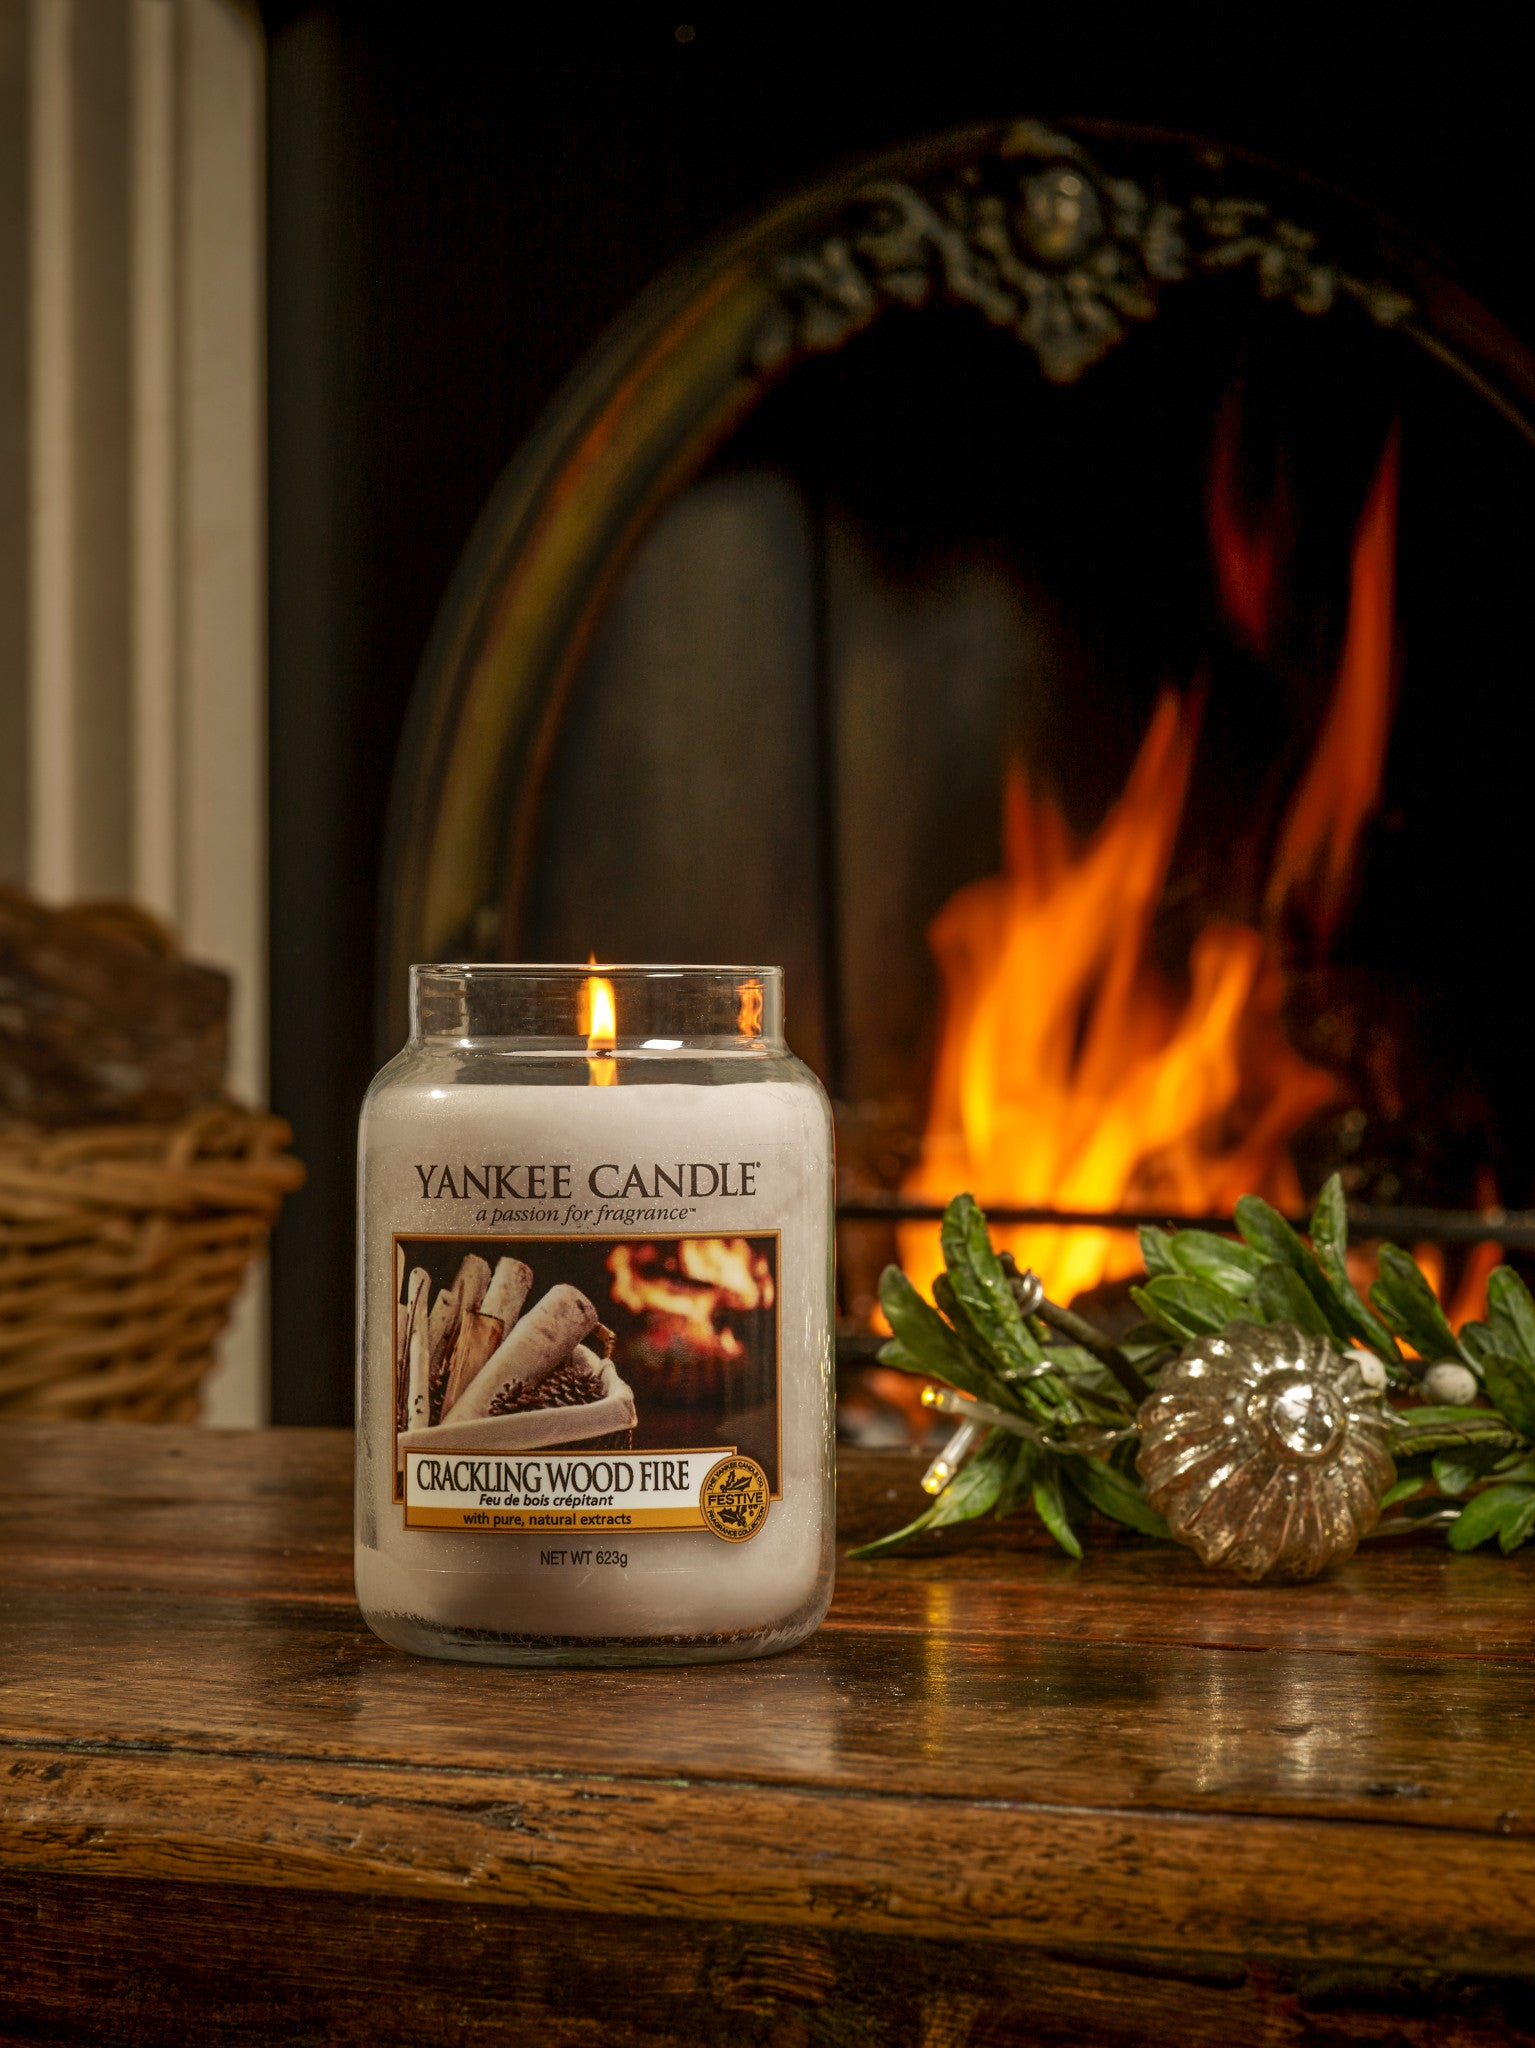 CRACKLING WOOD FIRE -Yankee Candle- Giara Grande